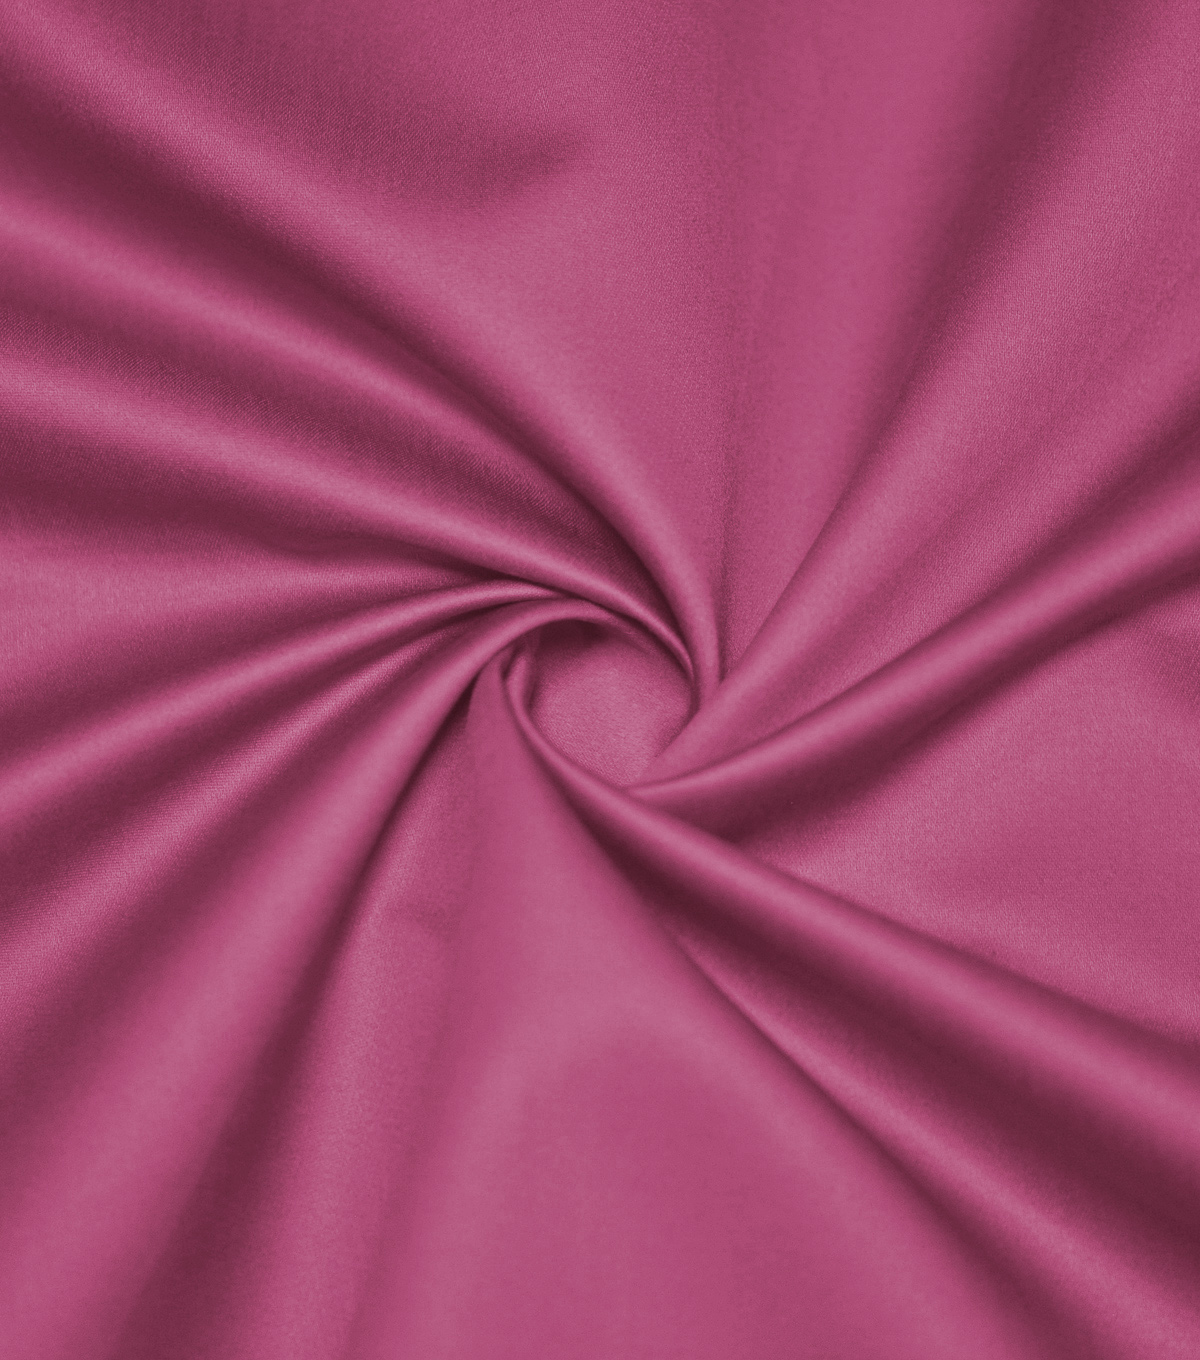 Supima Sateen Cotton Fabric-Solids, Dusty Rose